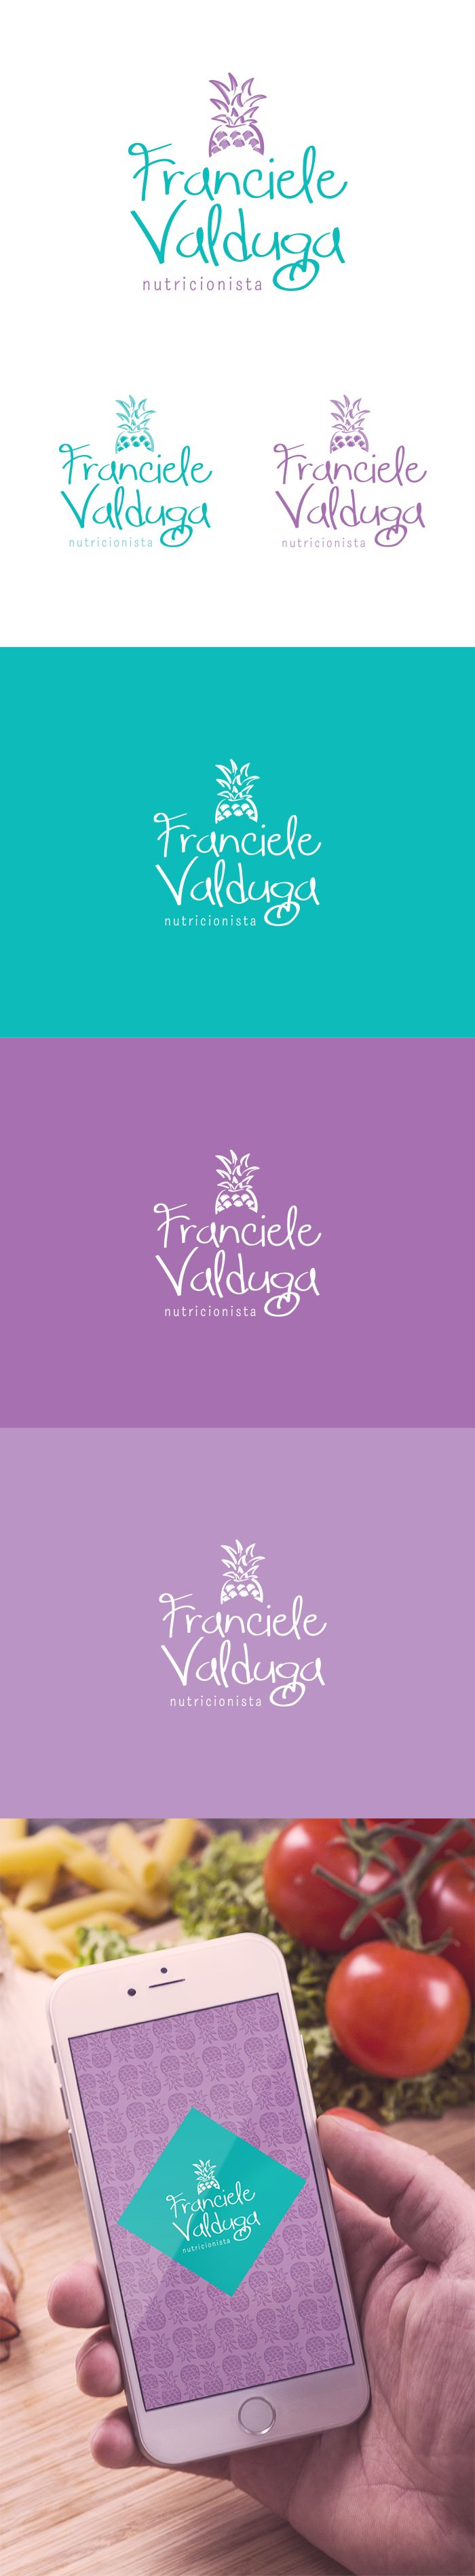 "Check out my @Behance project: ""logo 